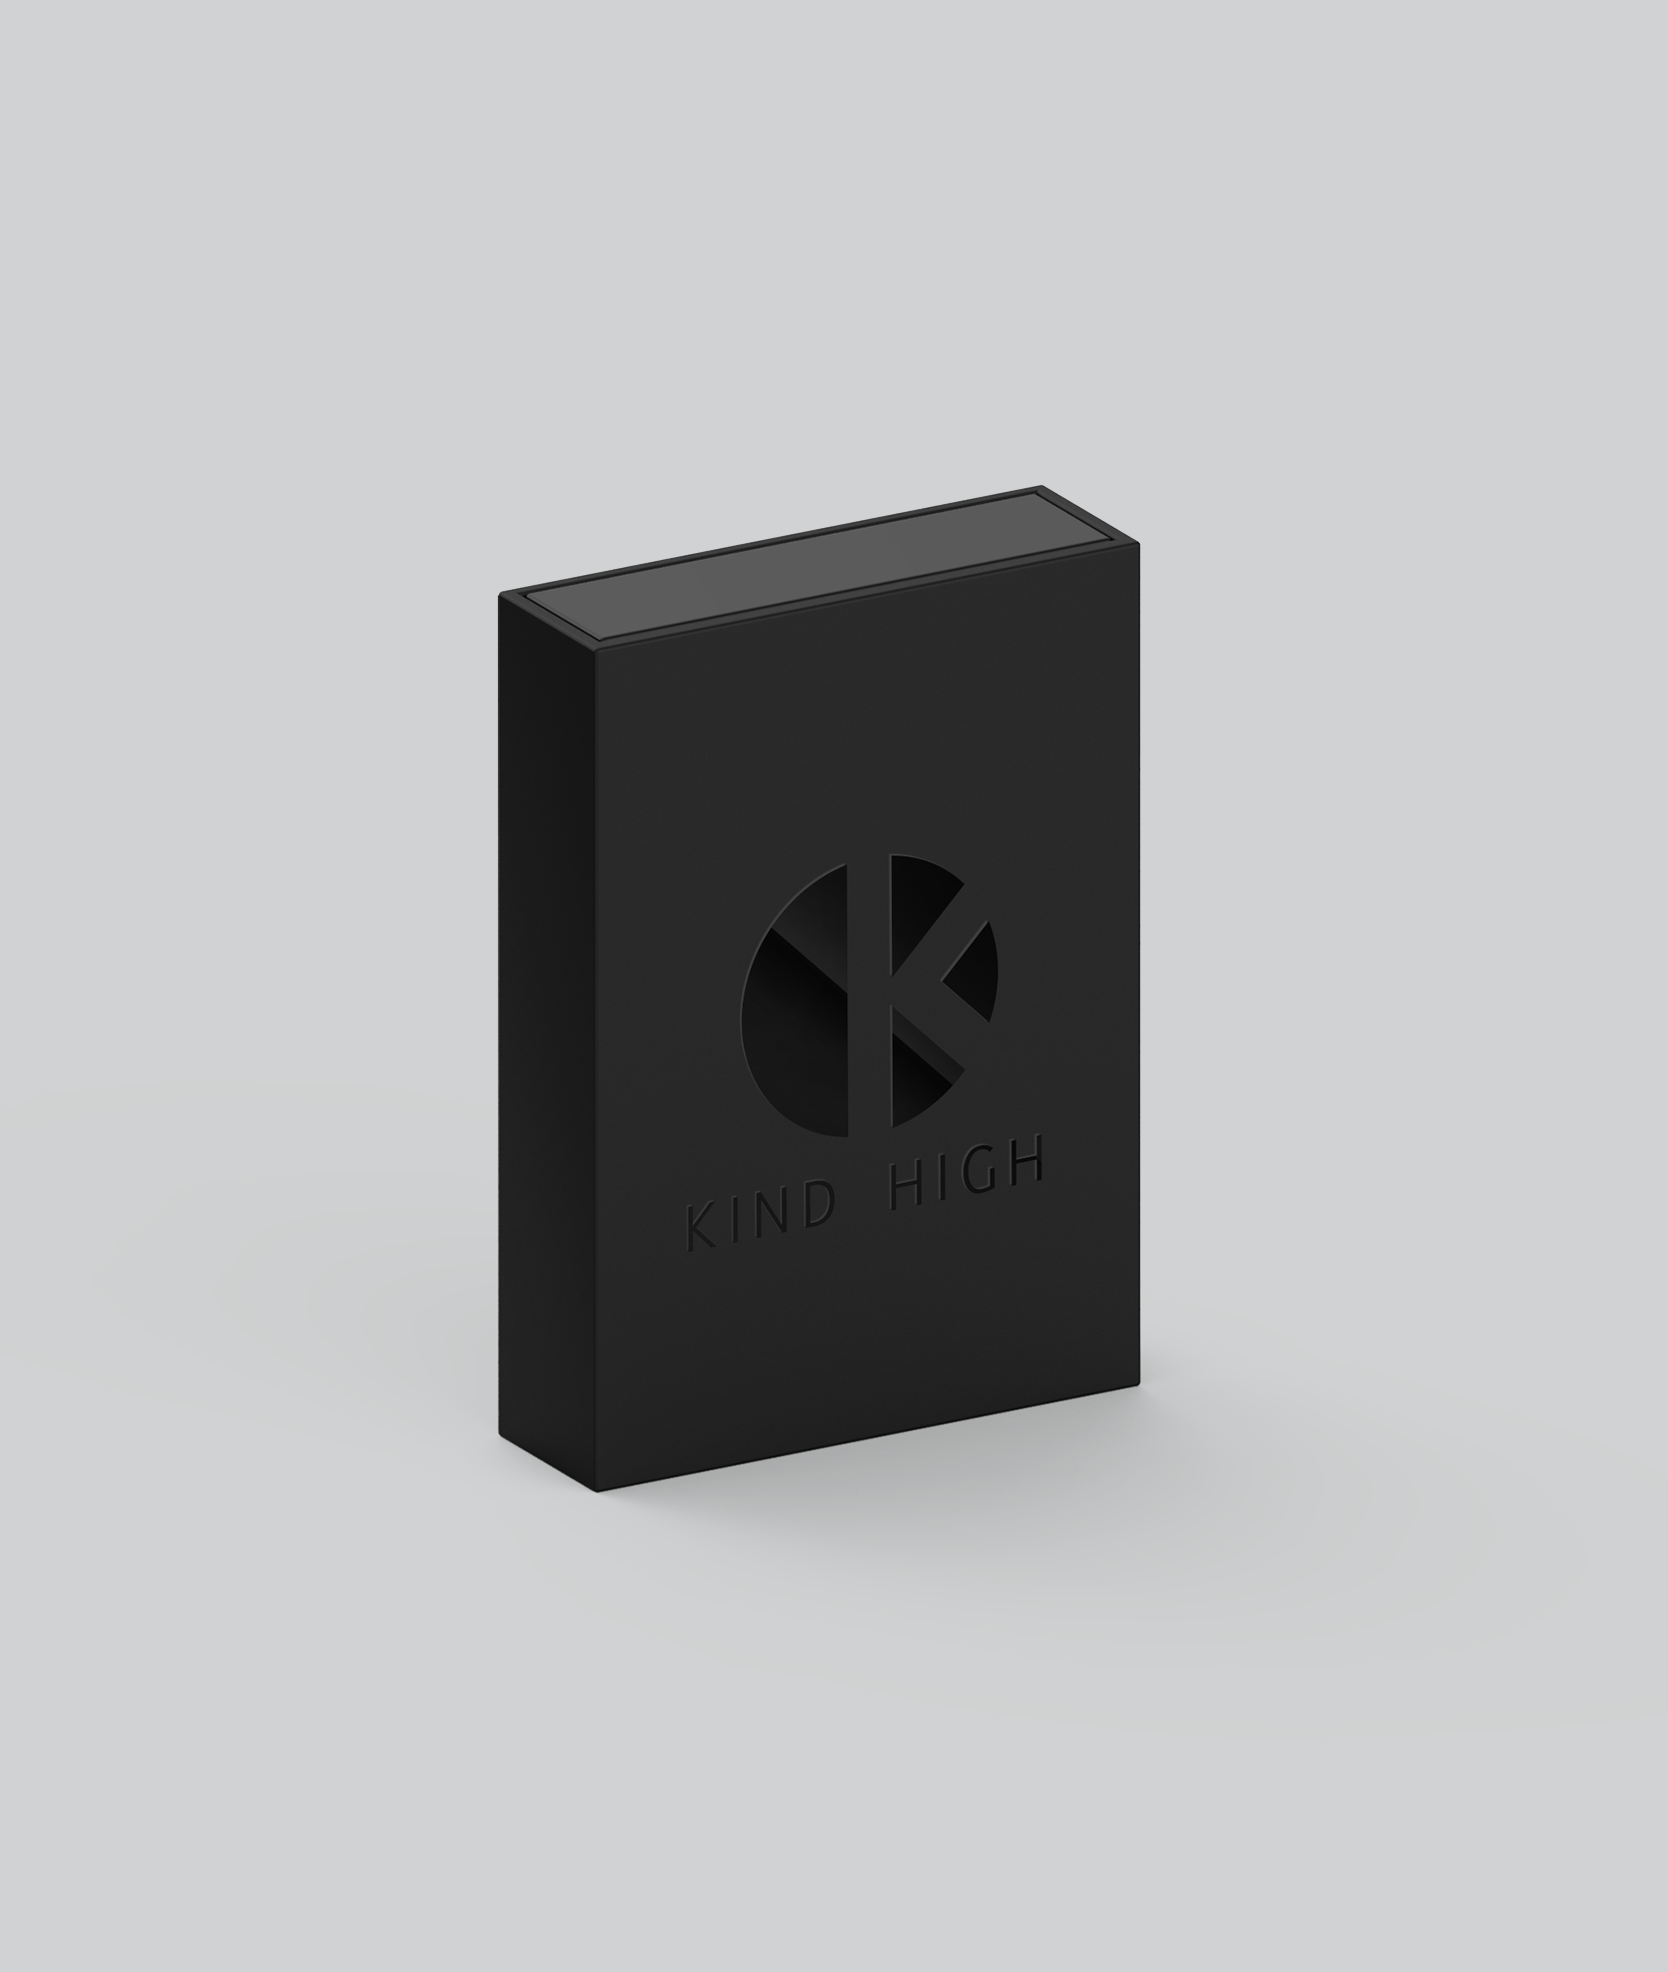 kindhigh-button-custom-packaging-boxes